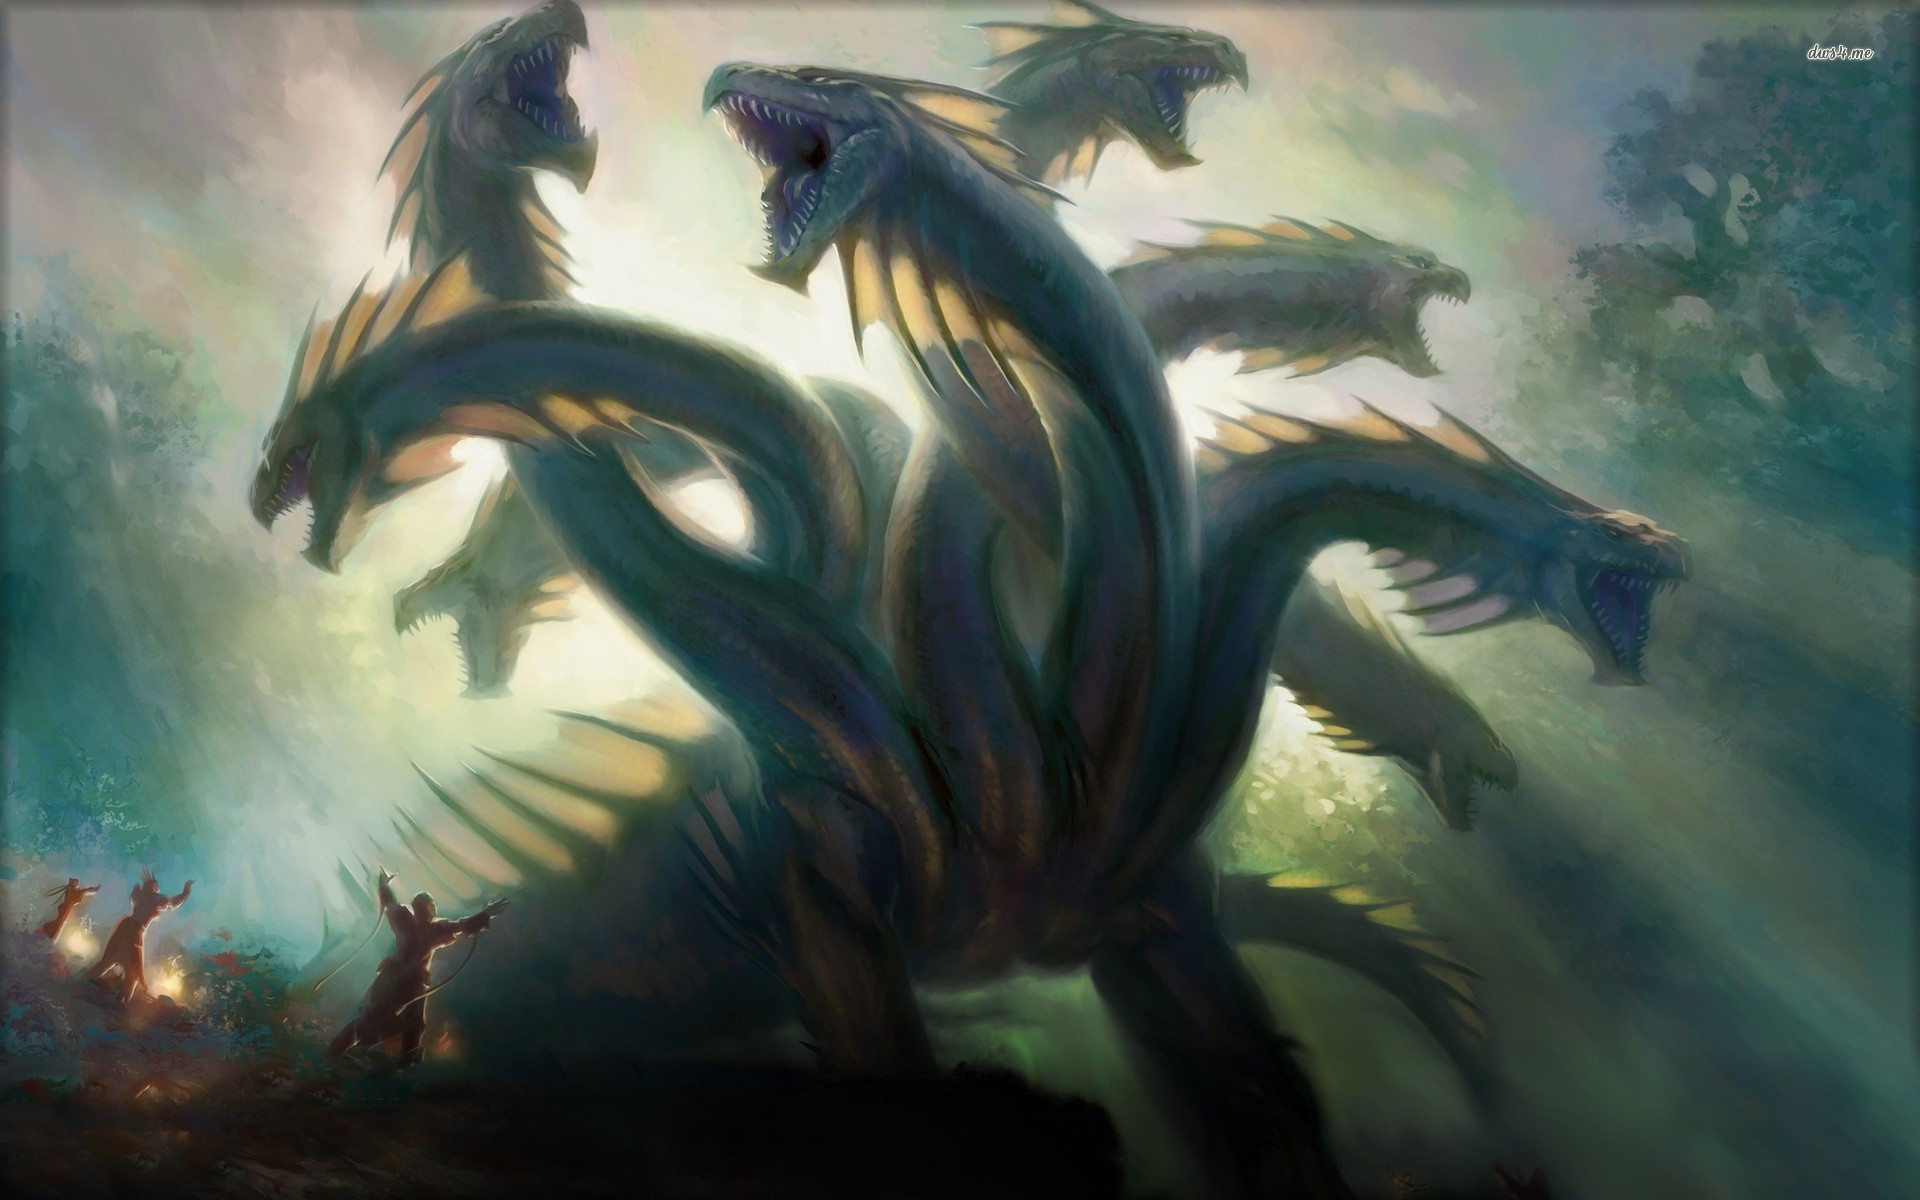 Free Download Magic The Gathering Wallpaper Game Wallpapers 14940